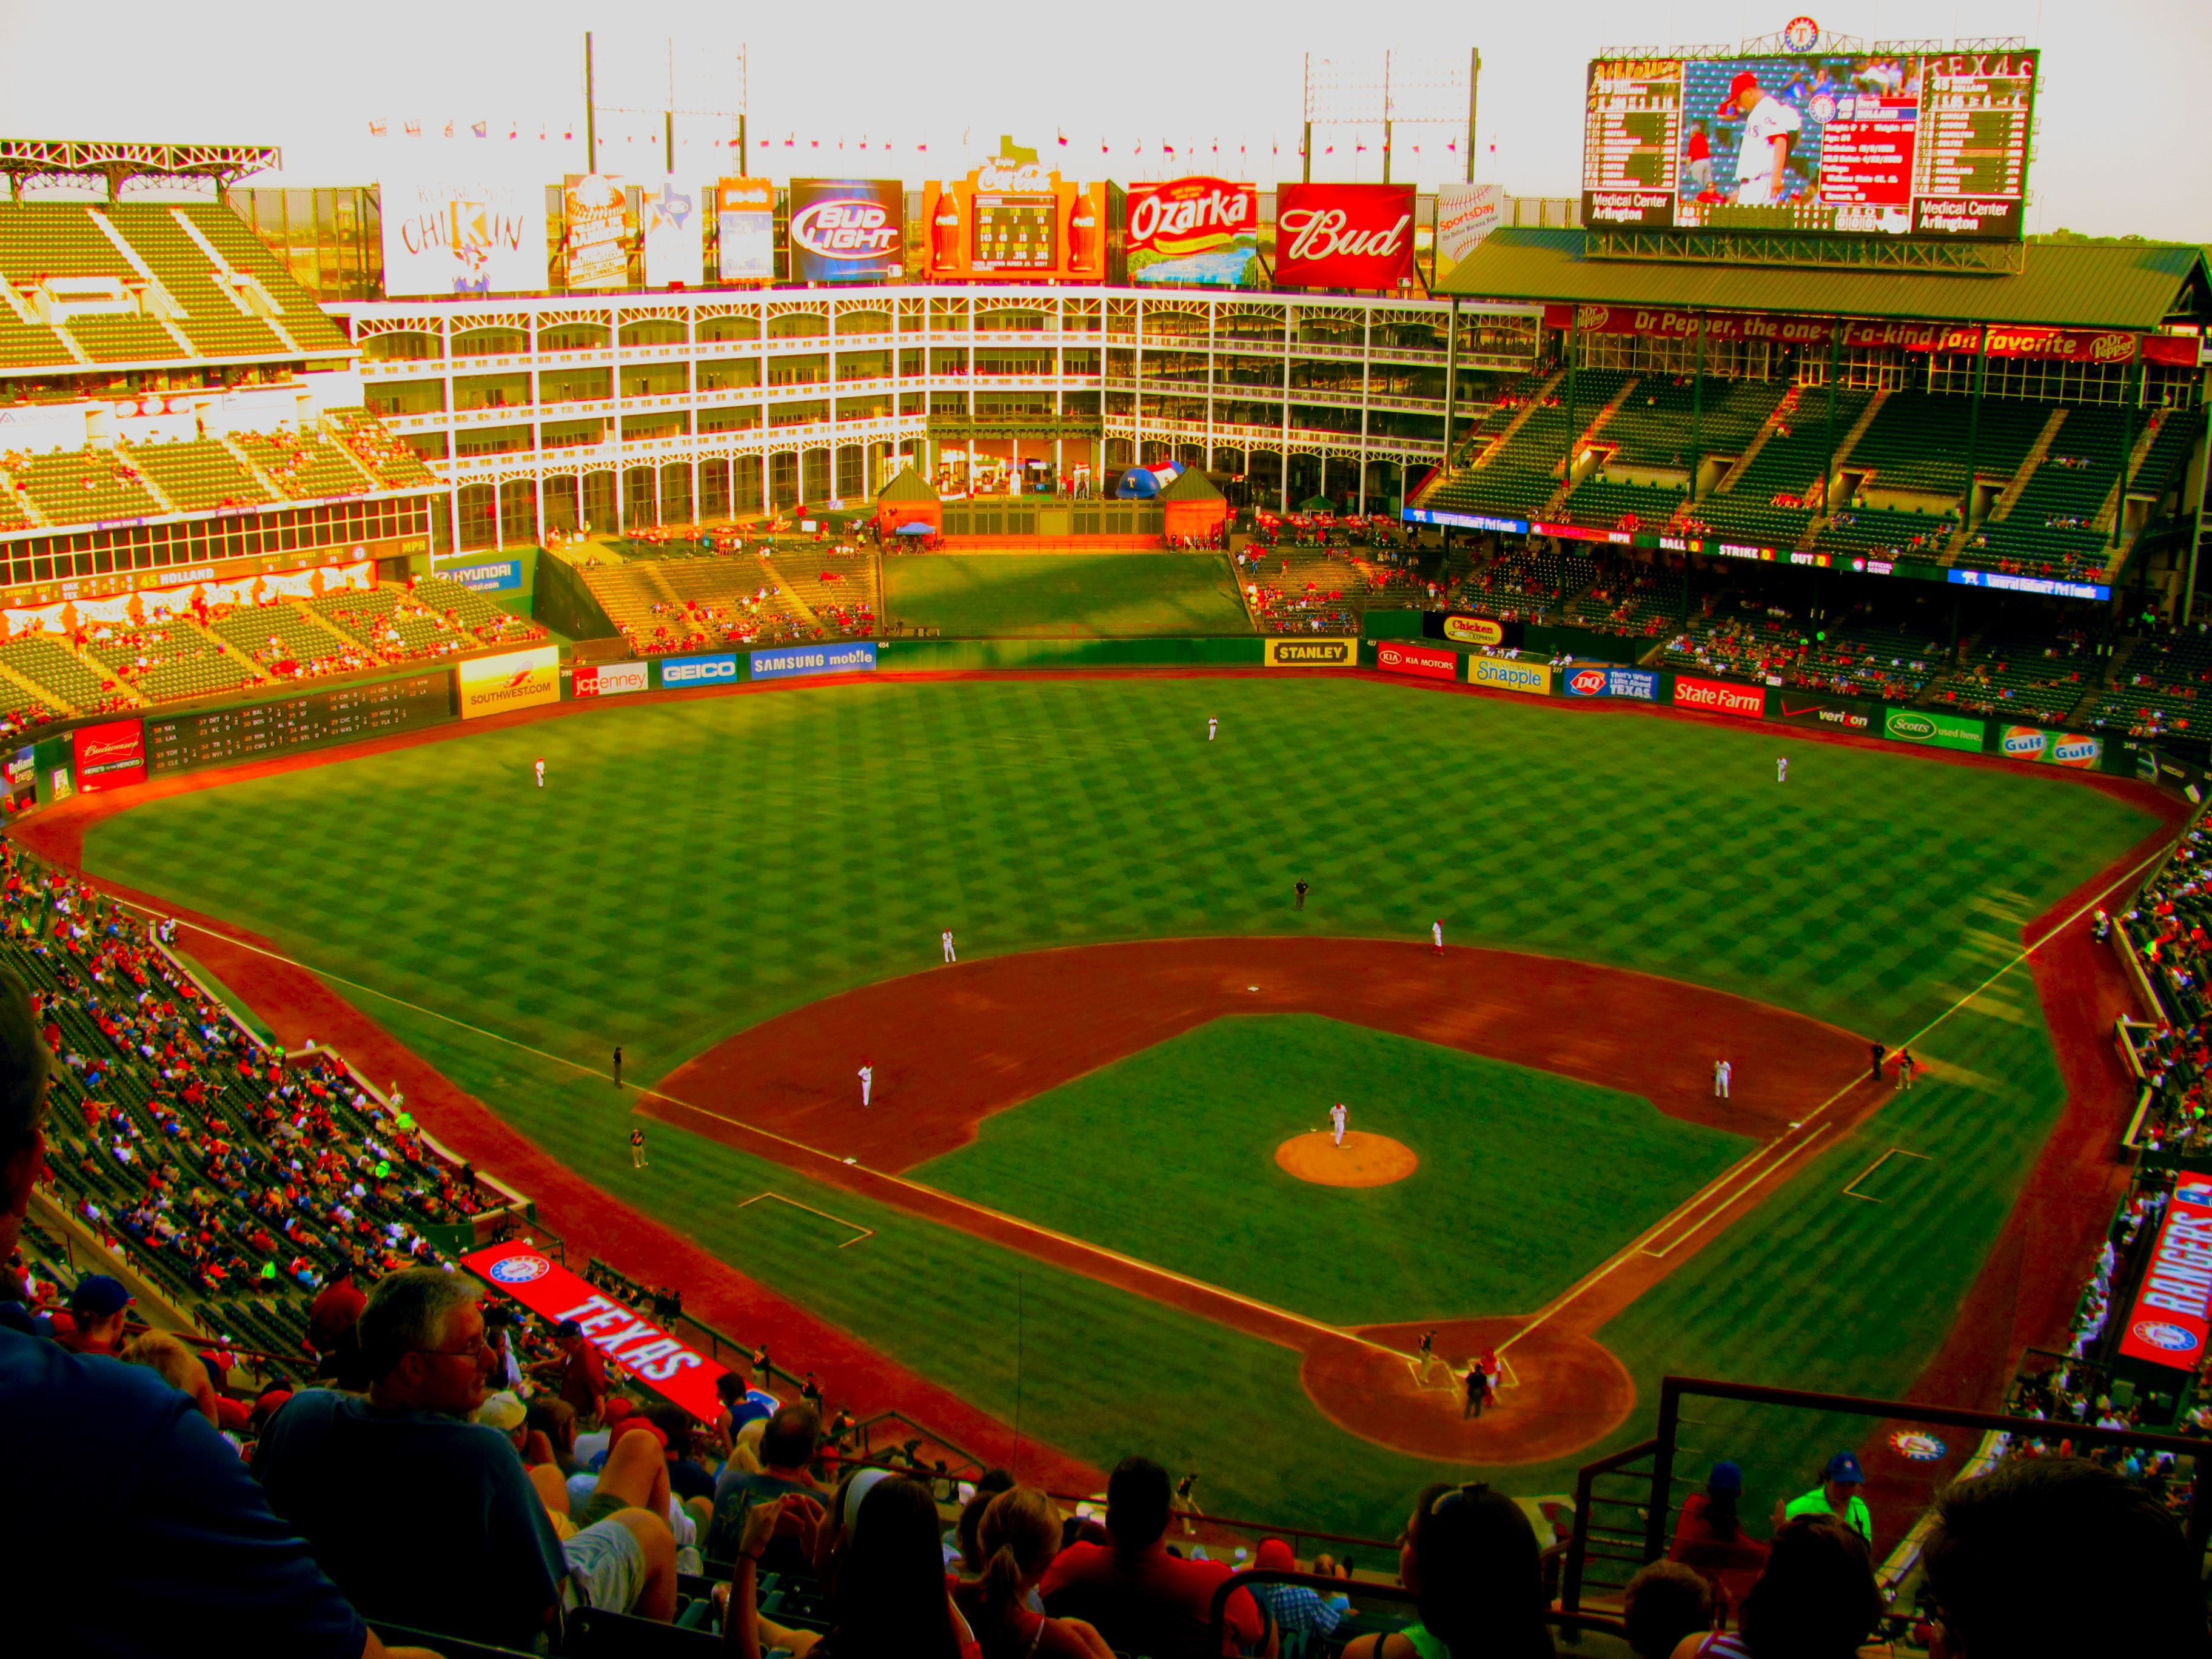 The Ballpark In Arlington Beautiful Ballpark Great Team And The Venue Of An Unforgettable Sto Texas Rangers Ballpark Texas Rangers Baseball Ranger Stadium